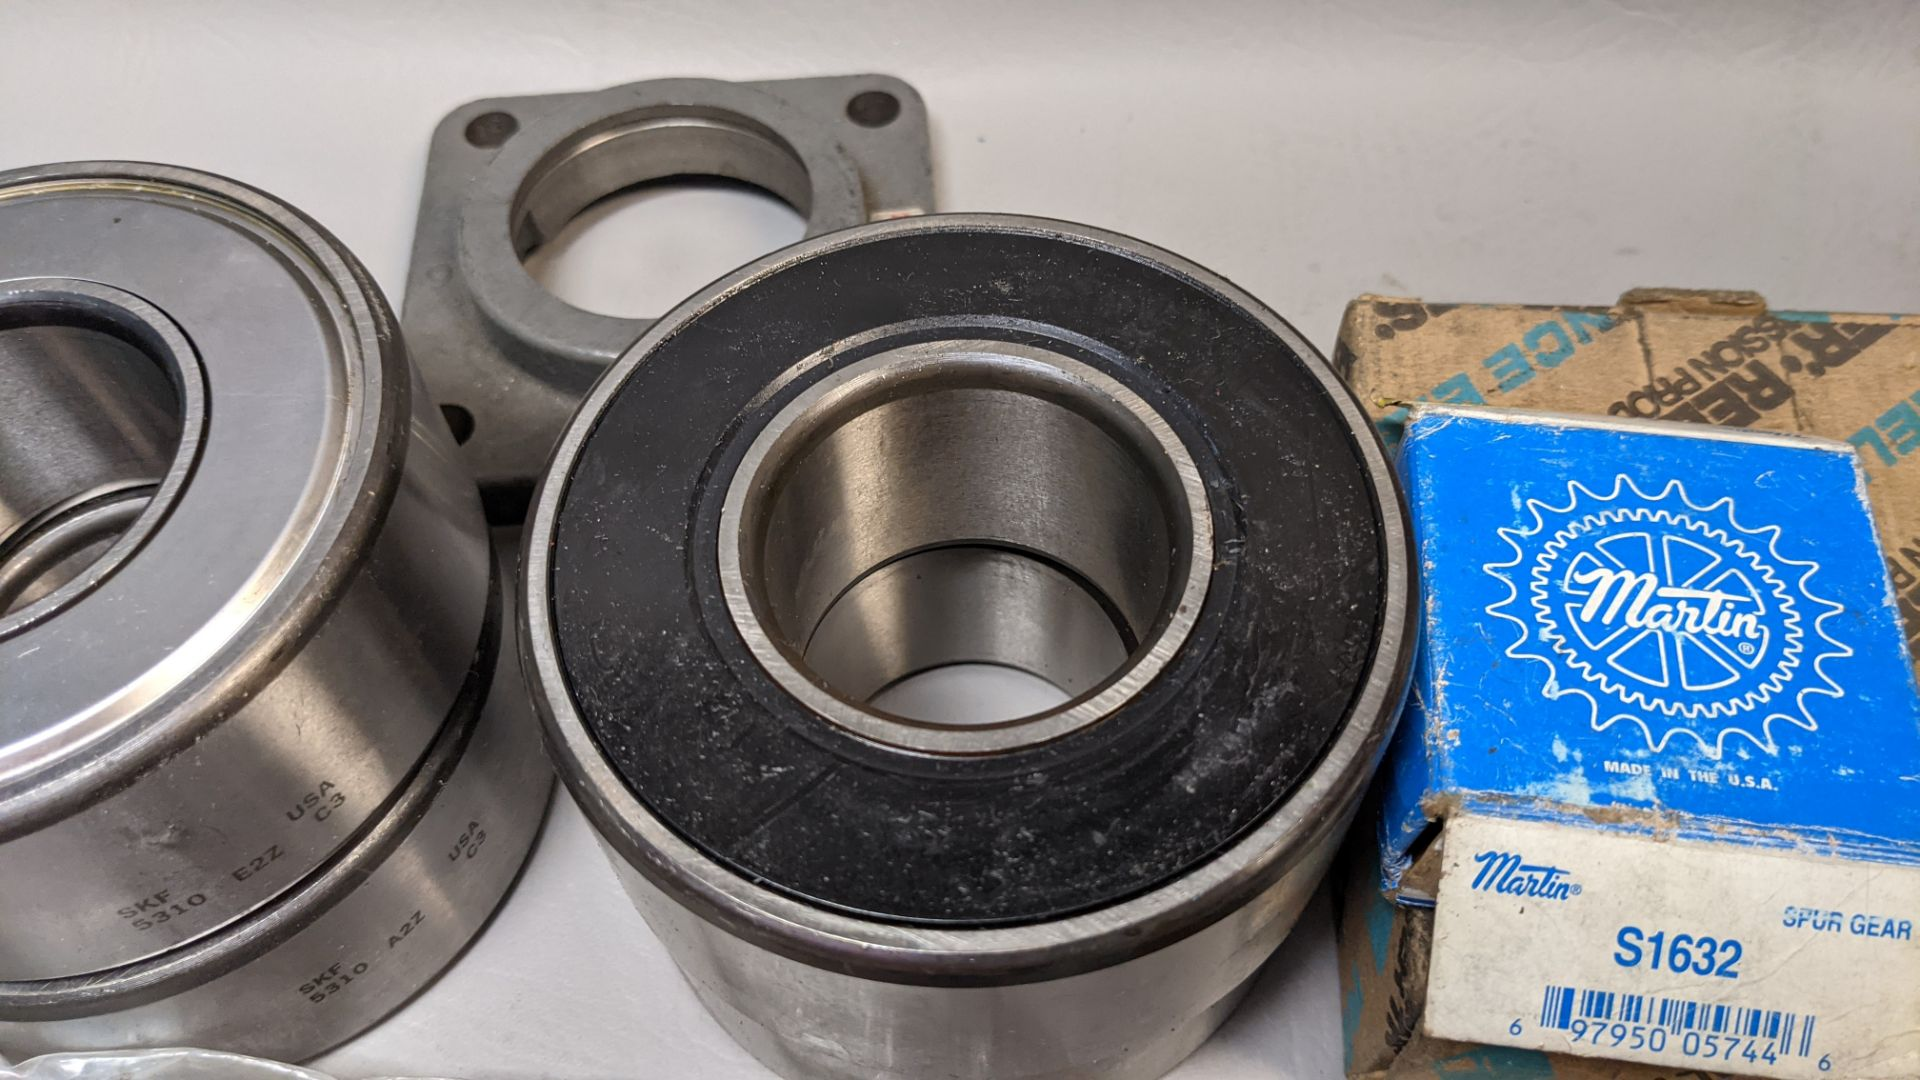 LOT F OBEARINGS AND SPROCKETS - Image 4 of 7